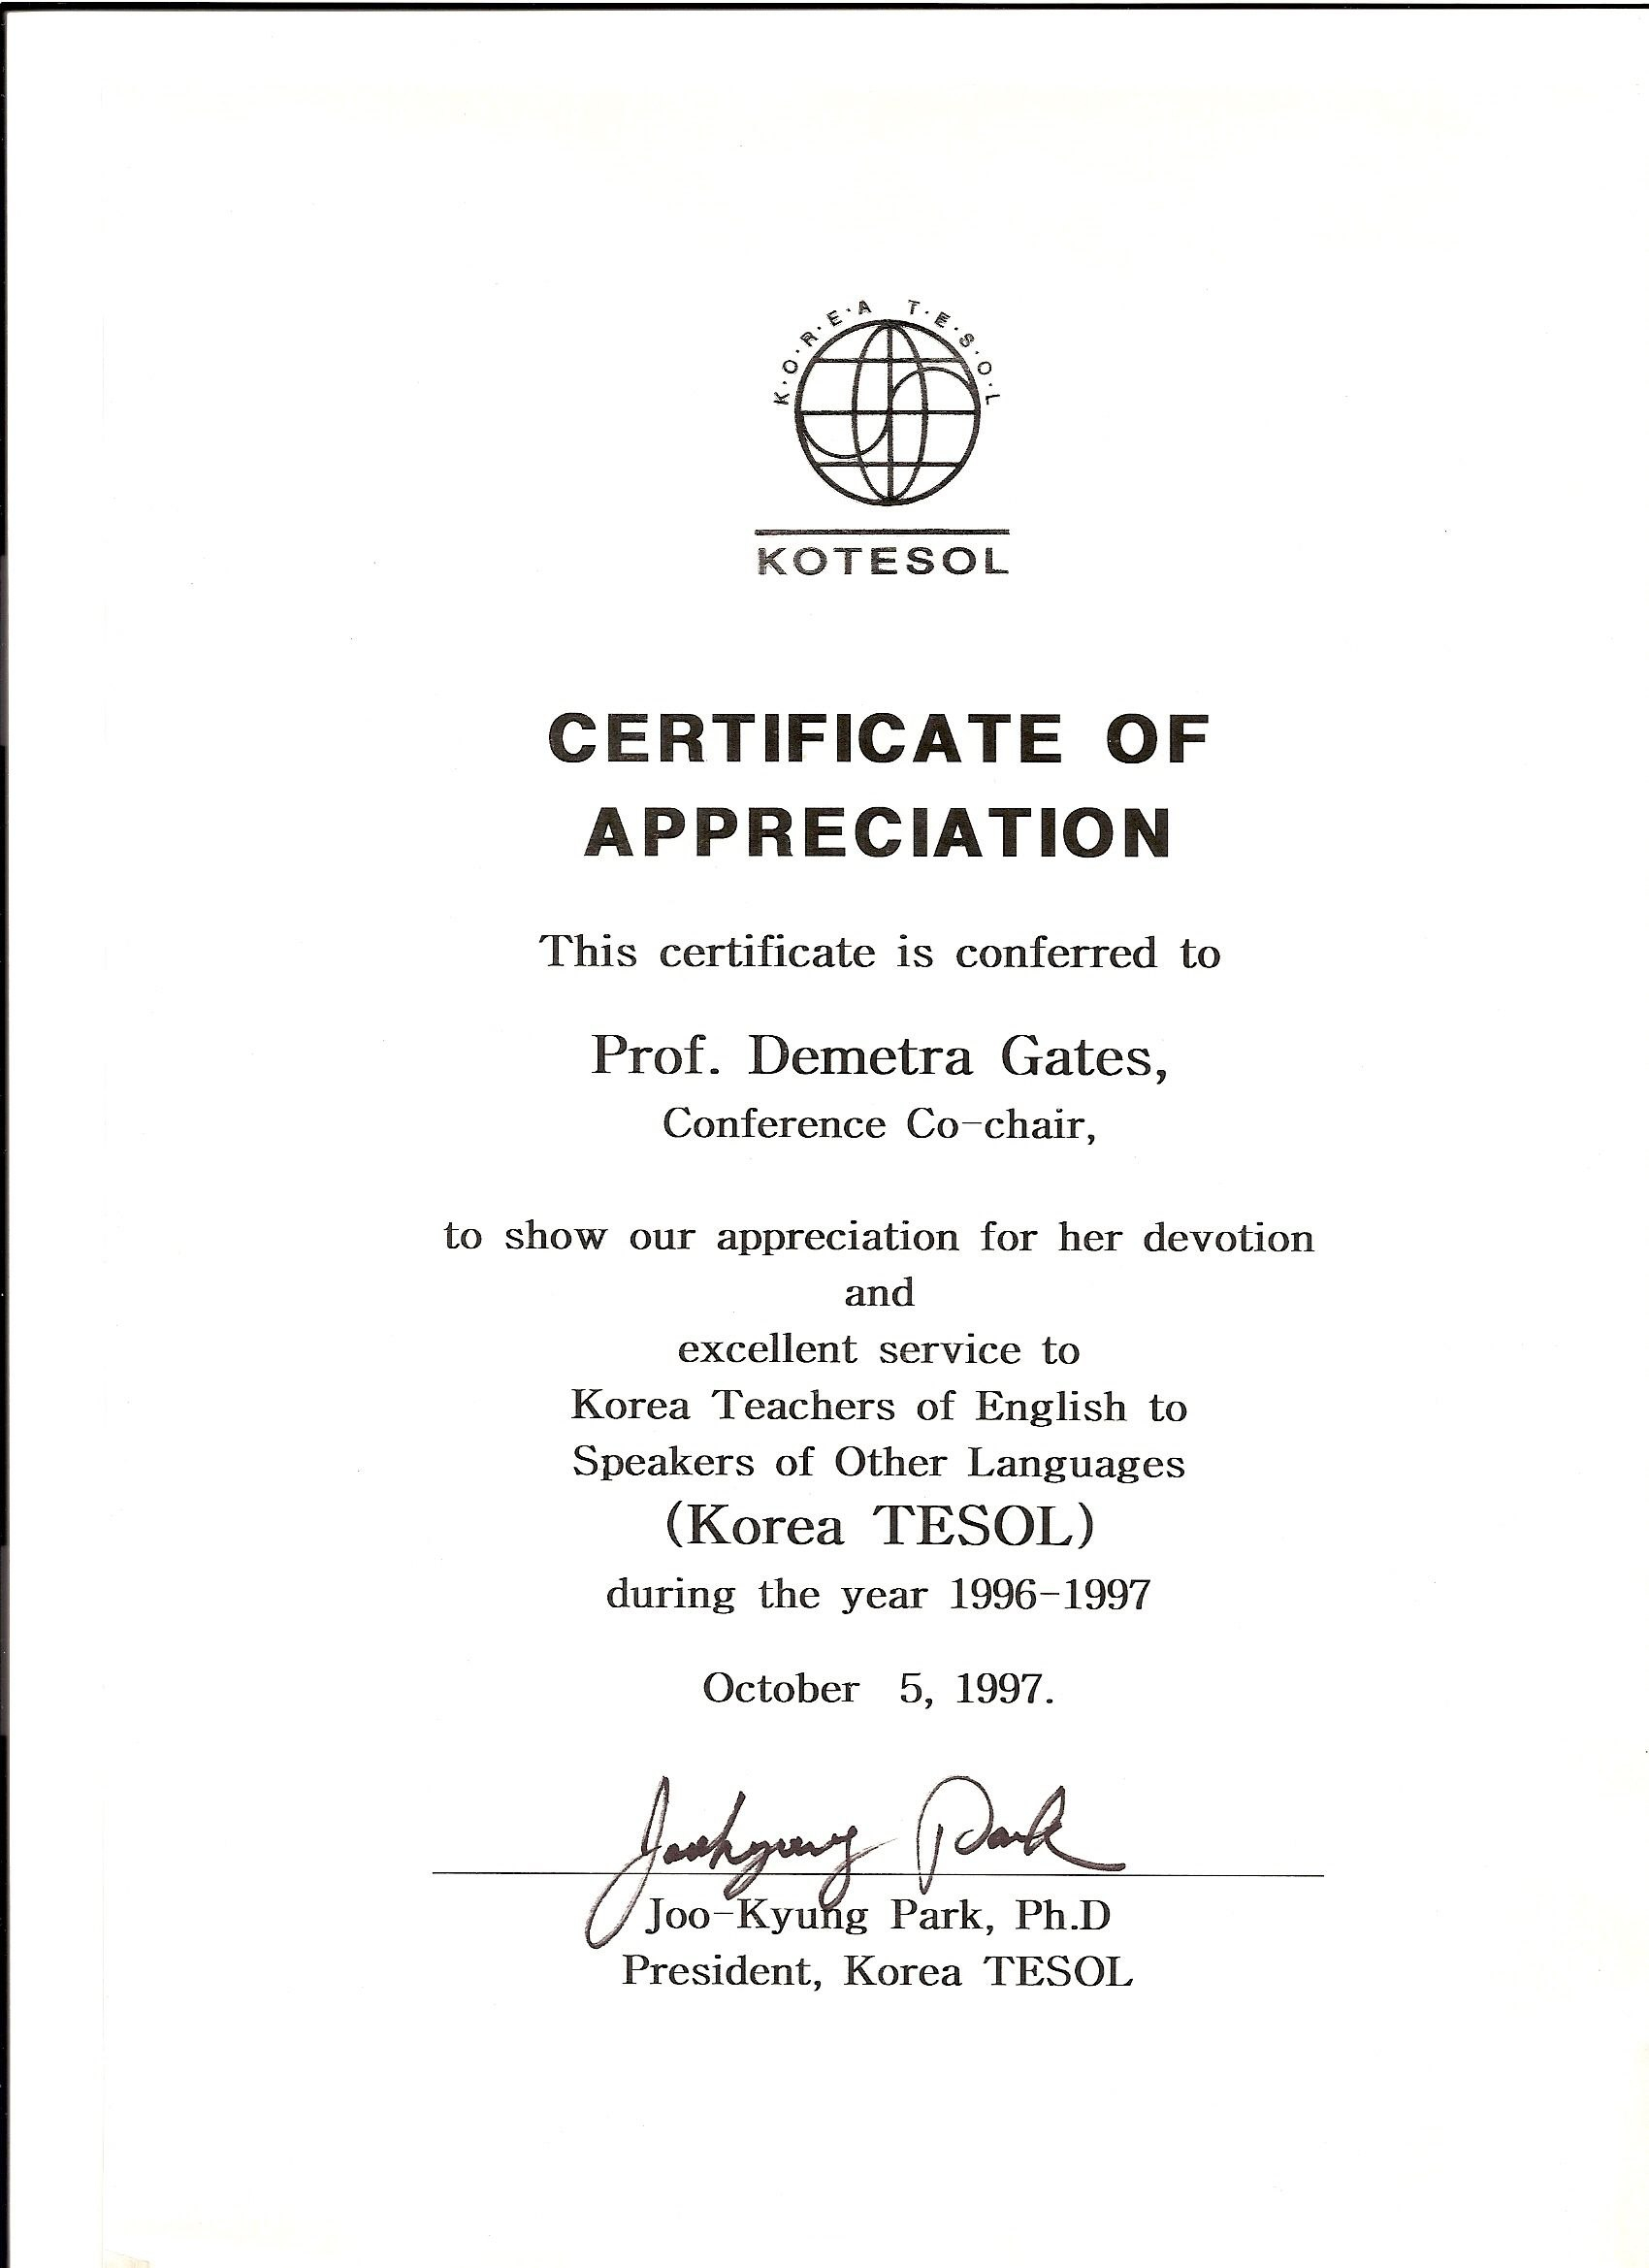 Kotesol Presidential Certificate Of Appreciation  Conference Inside Army Certificate Of Completion Template